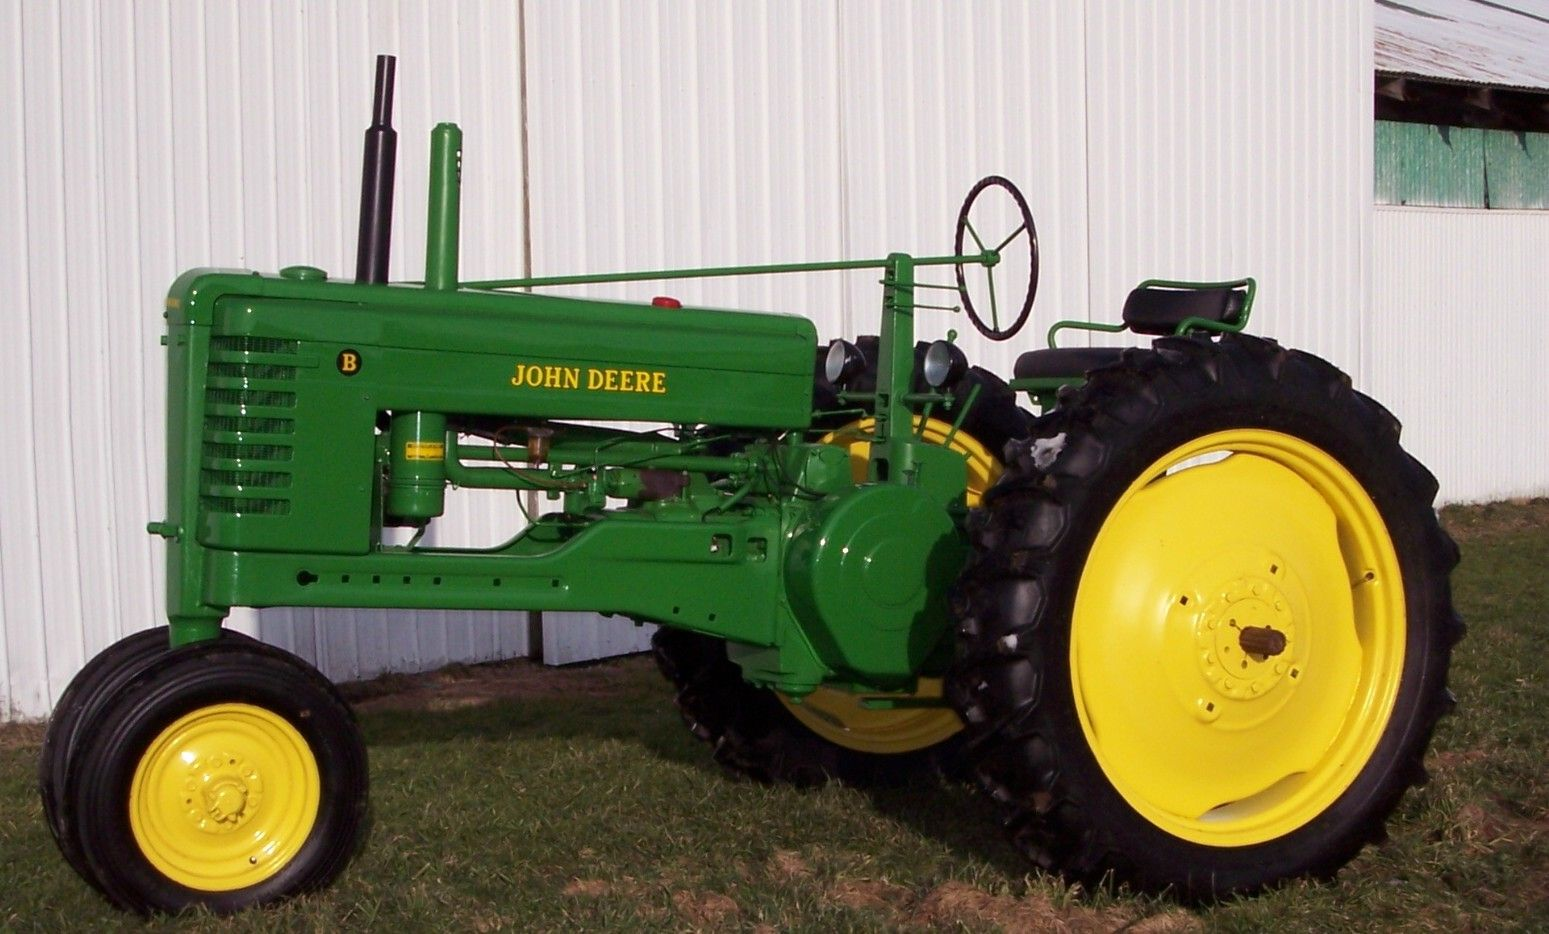 North Otto Tractor Parts My Style Pinterest And Vehicle John Deere Wiring Harness B Semblance